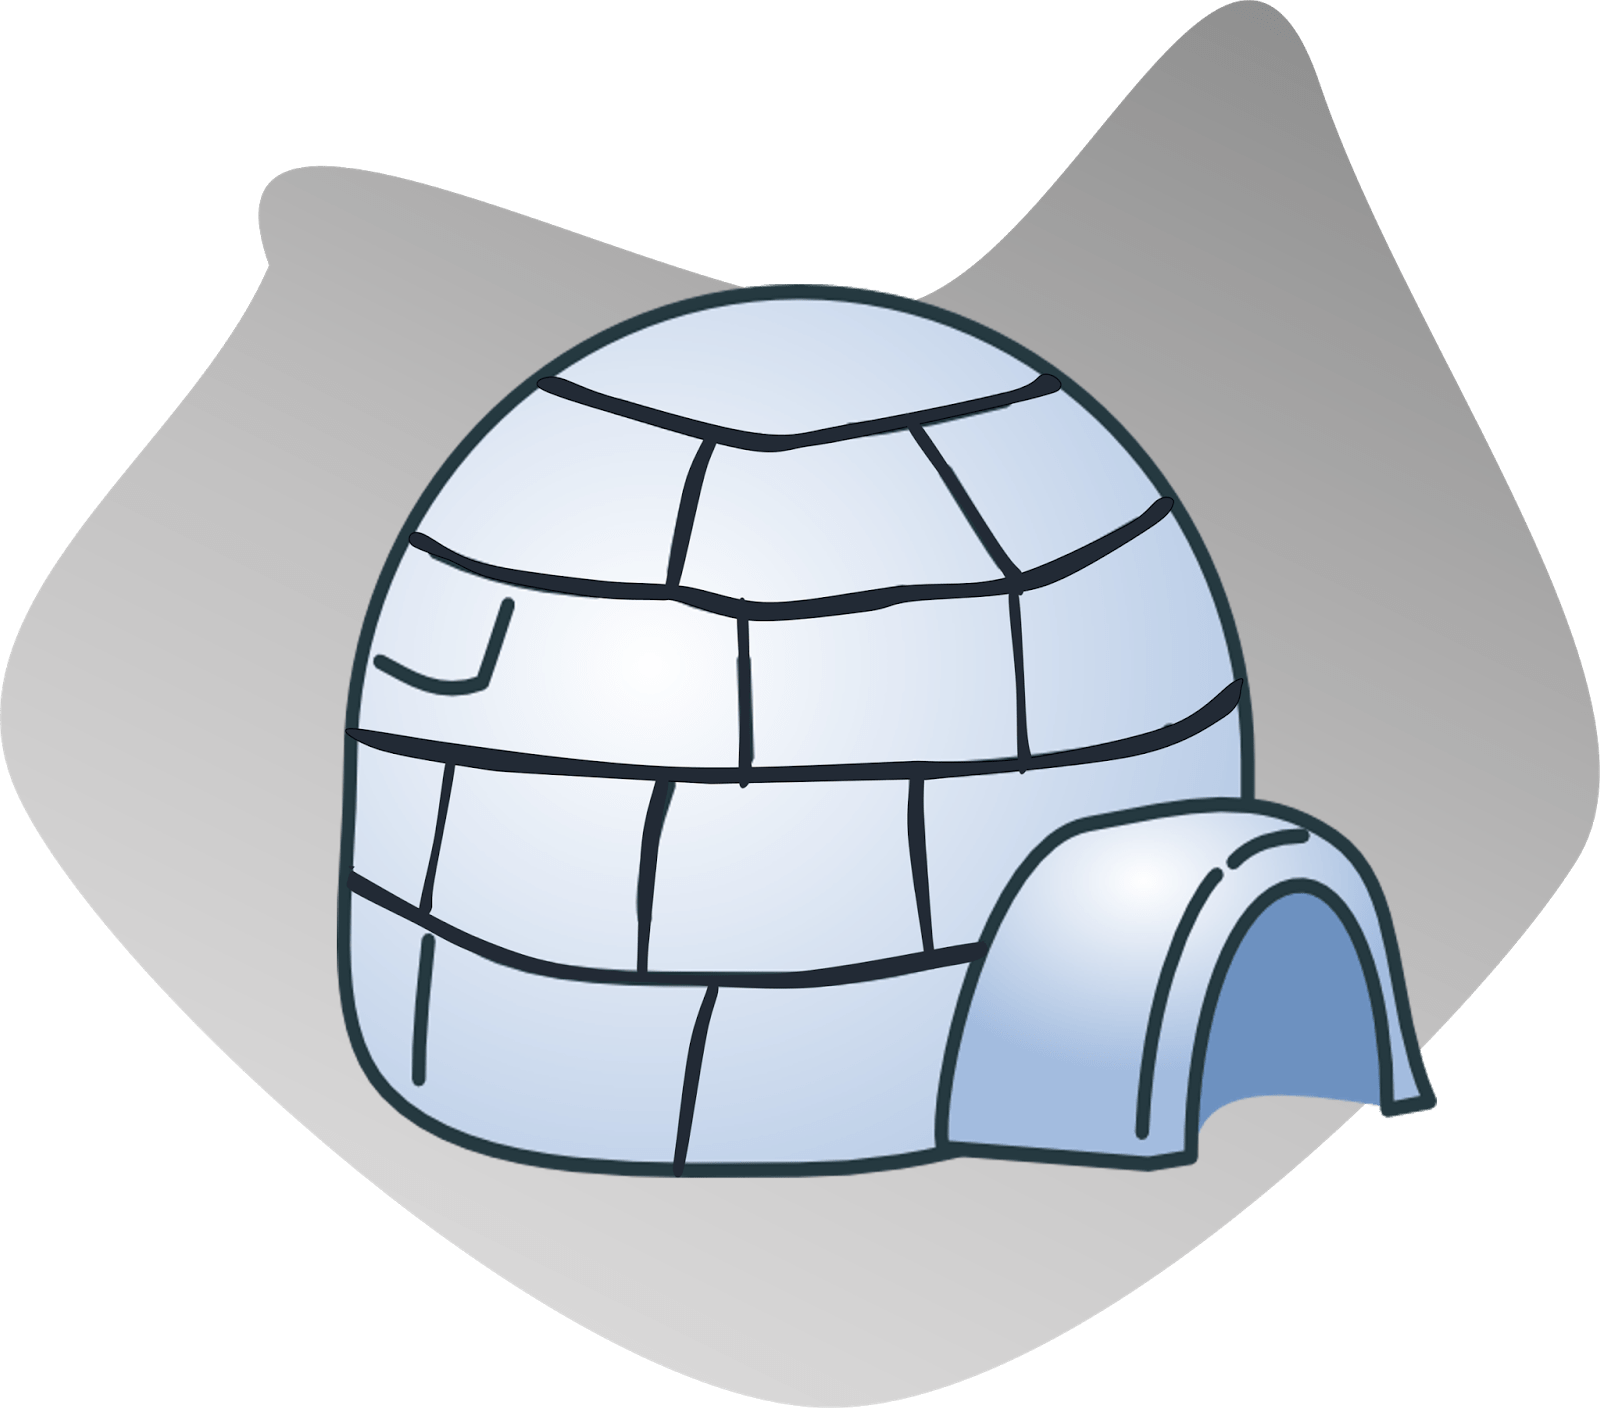 hight resolution of igloo house cliparts clipart club